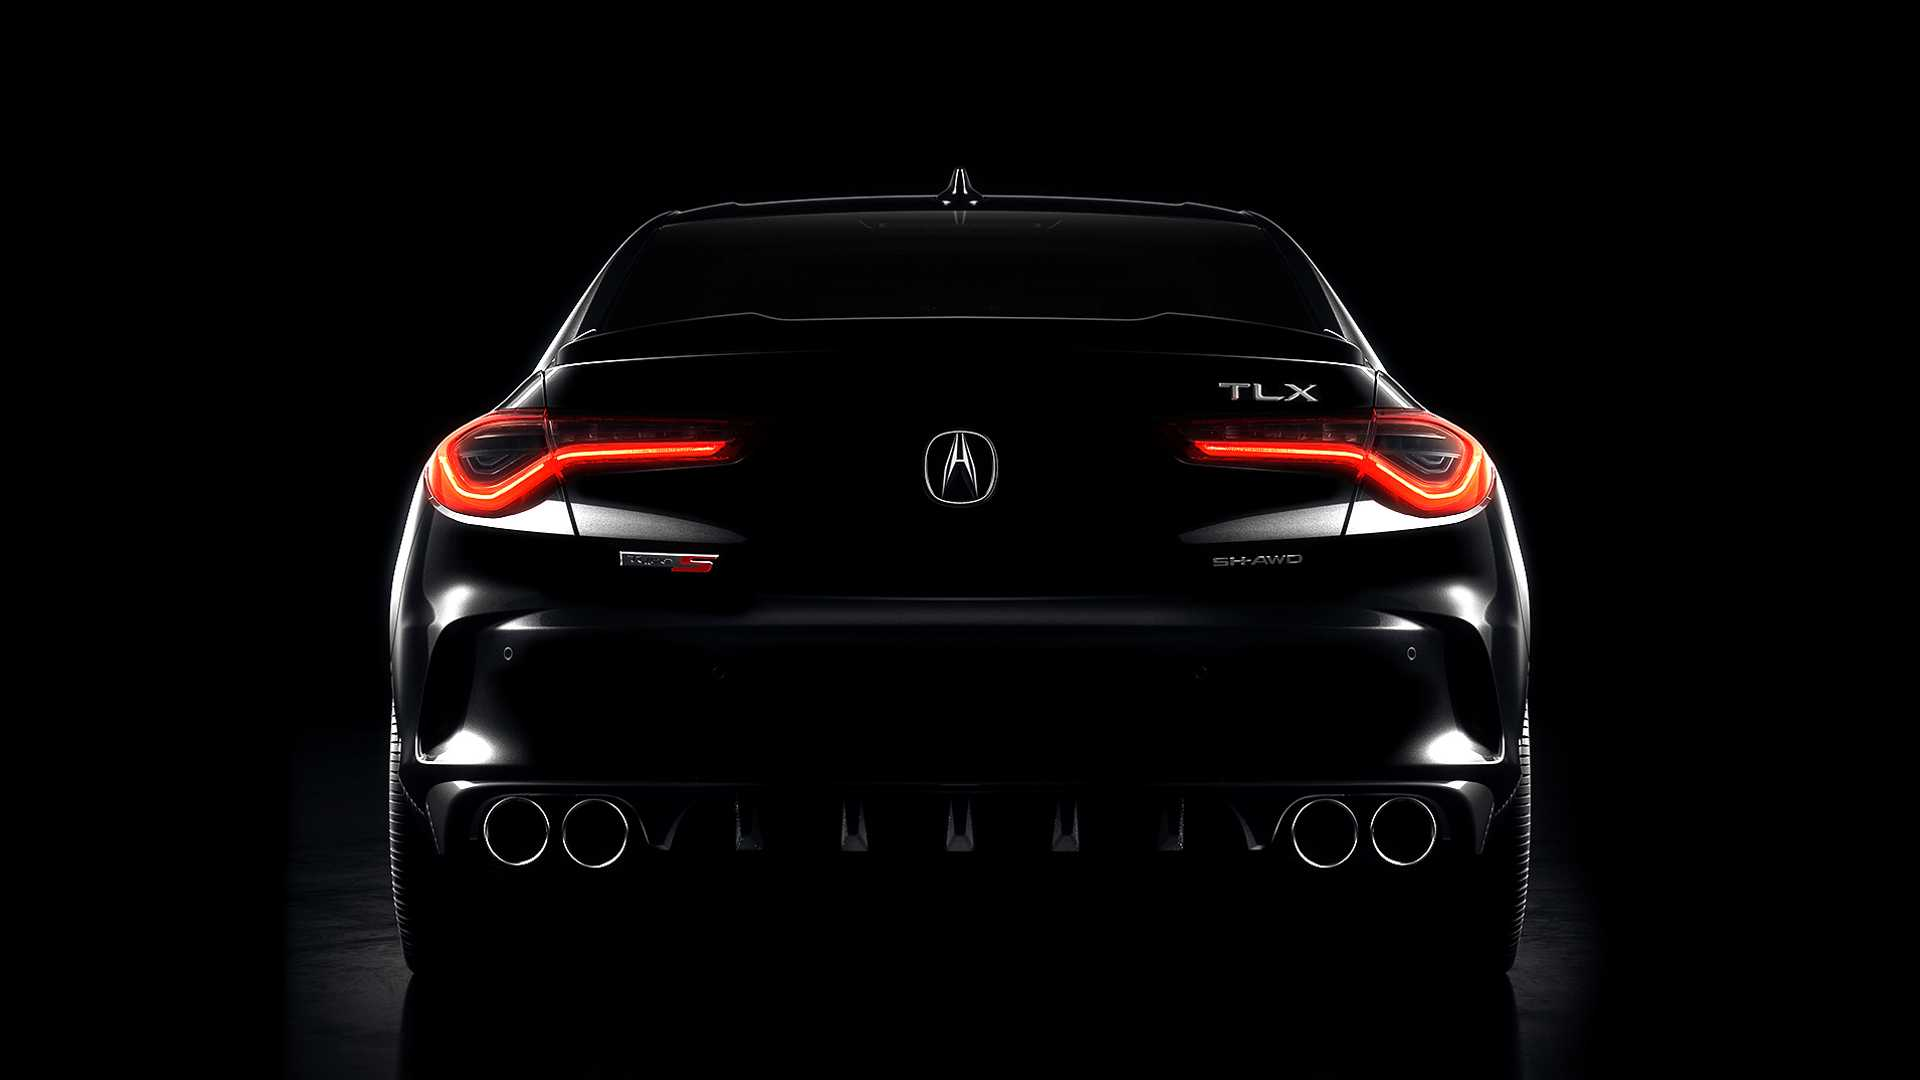 2021 Acura TLX Teaser Previews Type S Revival New Turbocharged V6 1920x1080